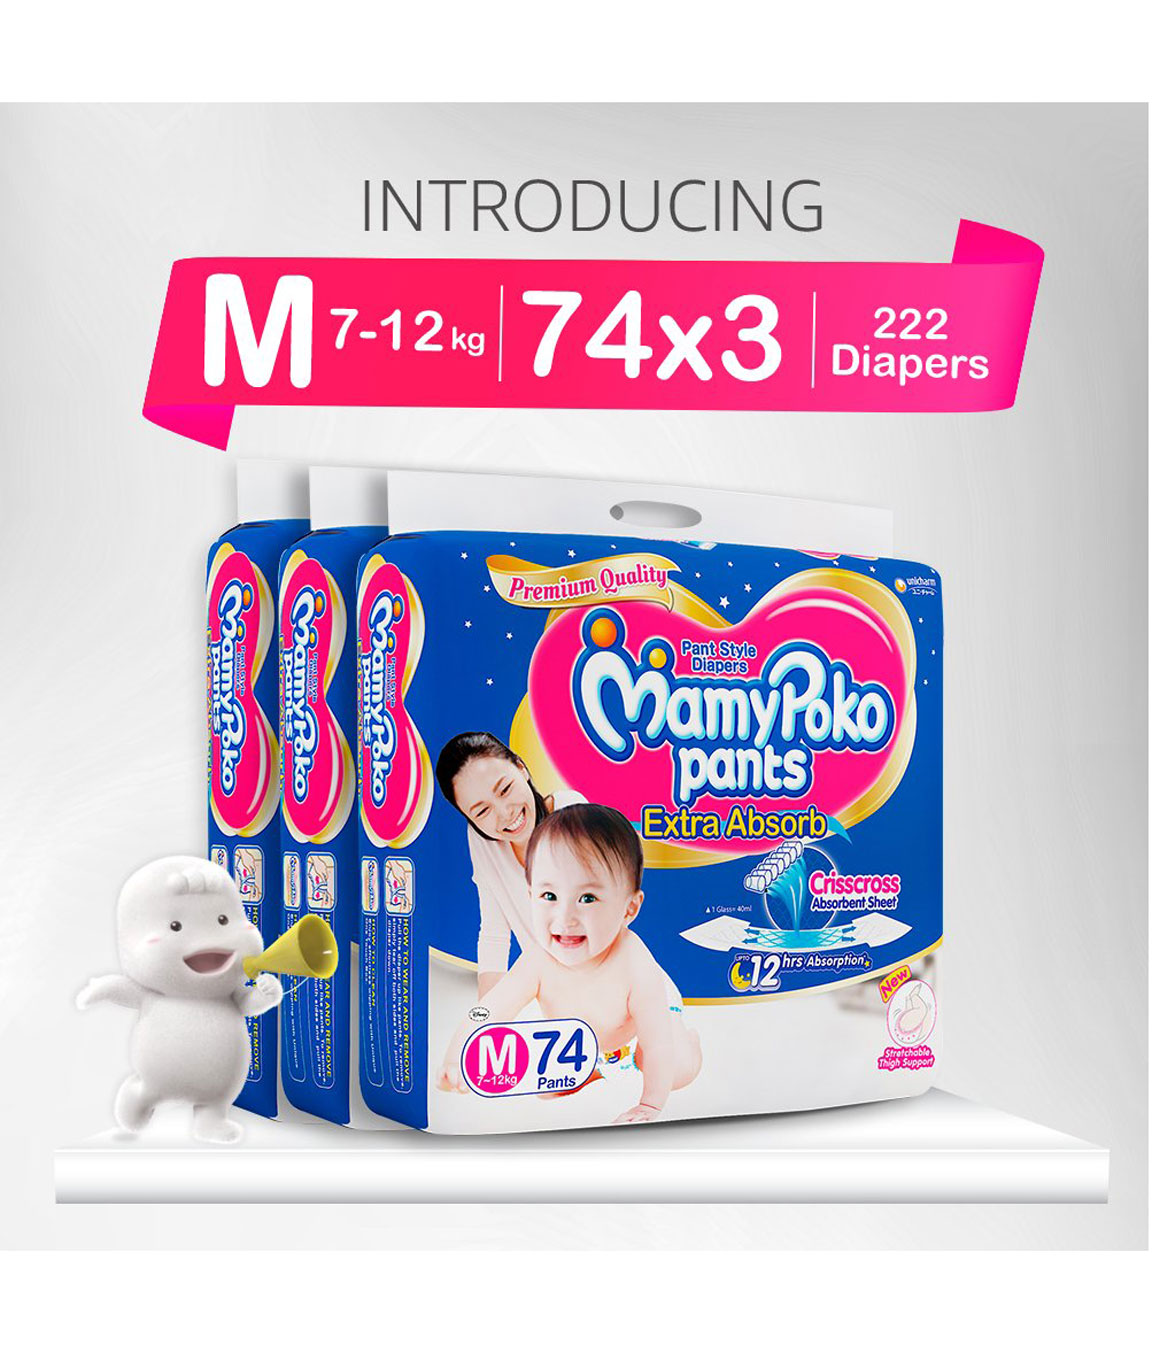 MamyPoko Pants Extra Absorb Medium Size Diapers (Pack of 74 Diapers*3 = 222 Diapers) - Super Value Pack